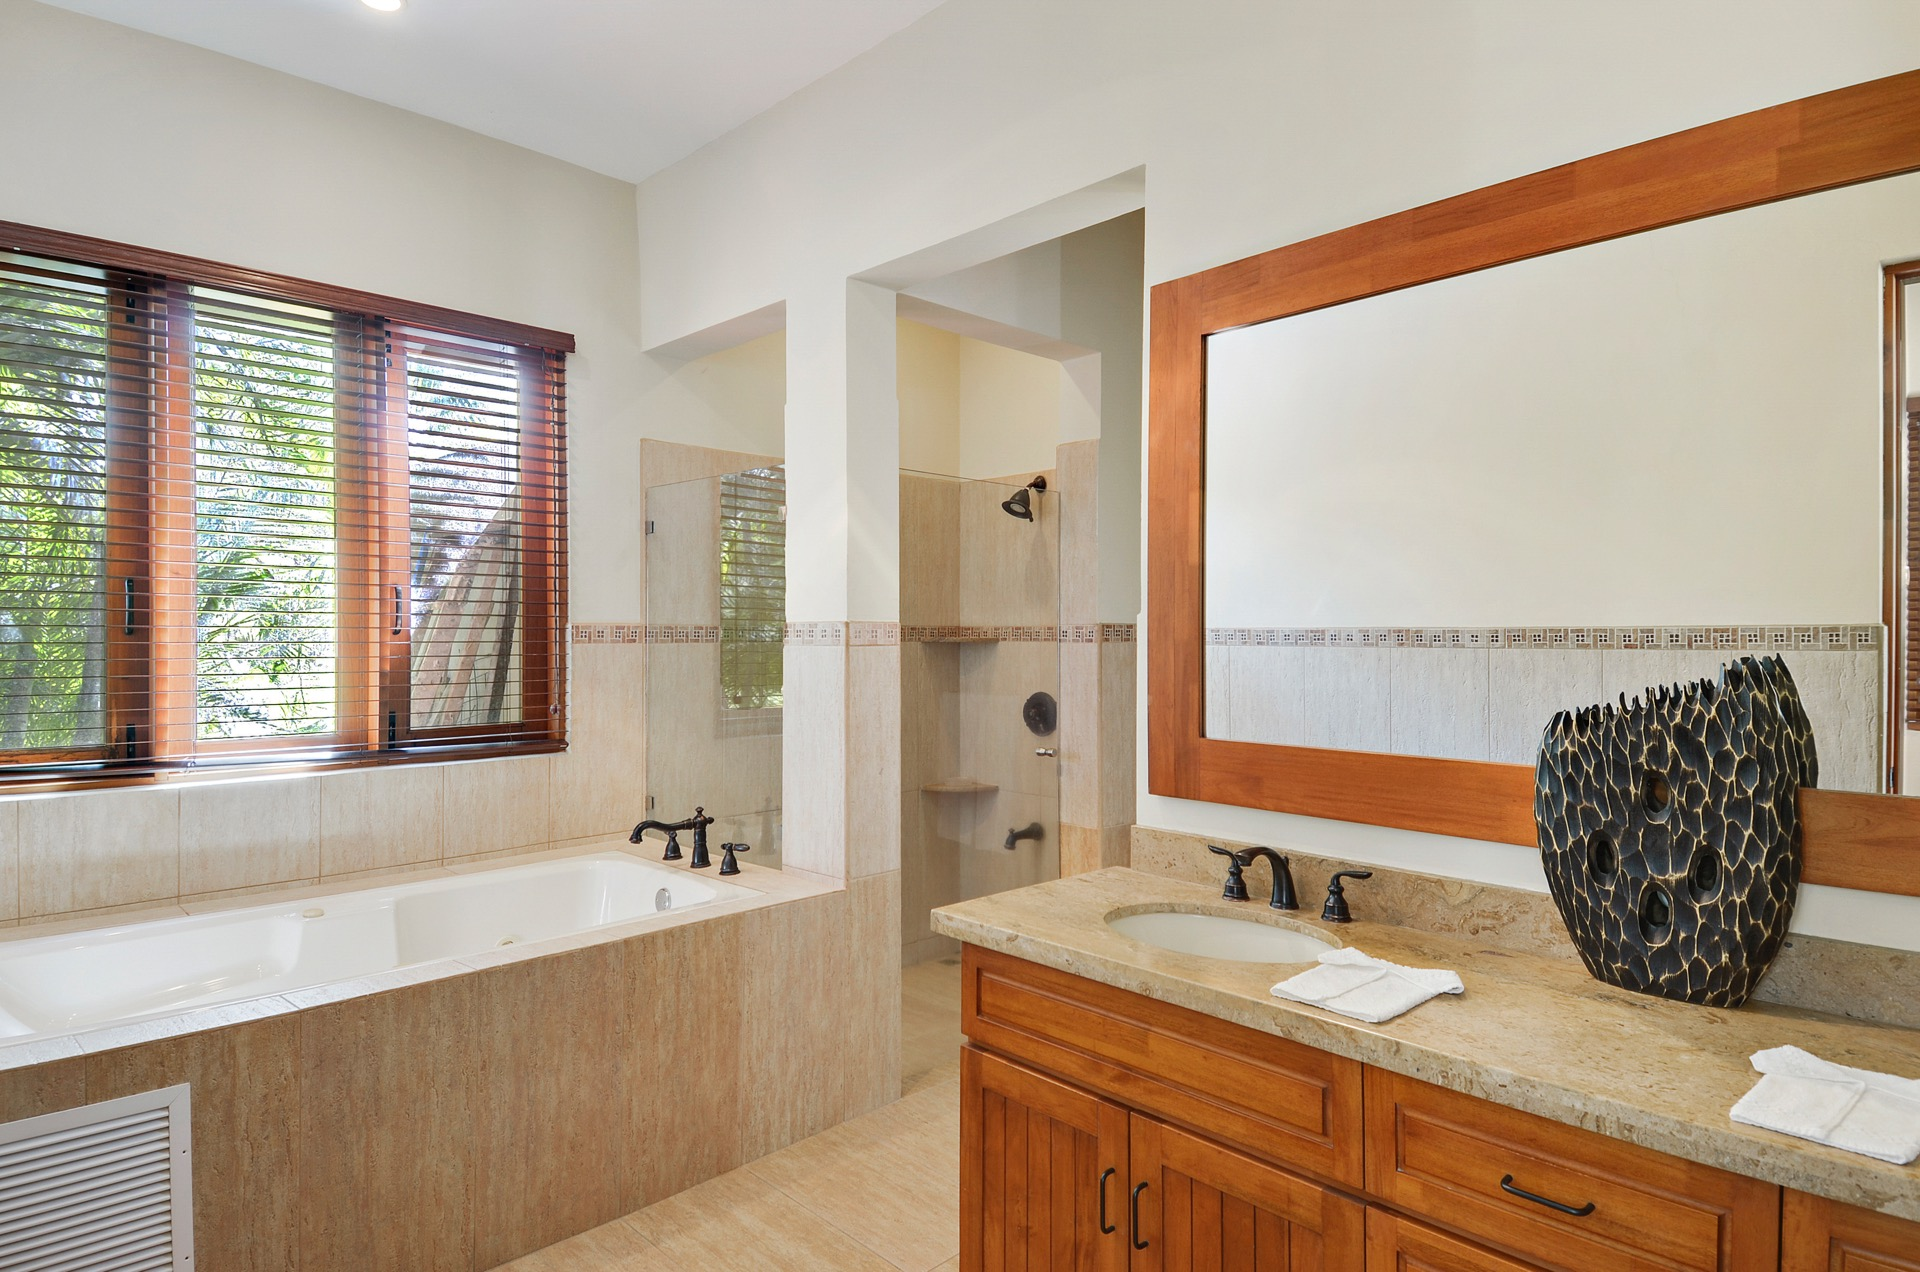 Shower or tub? Your choice!